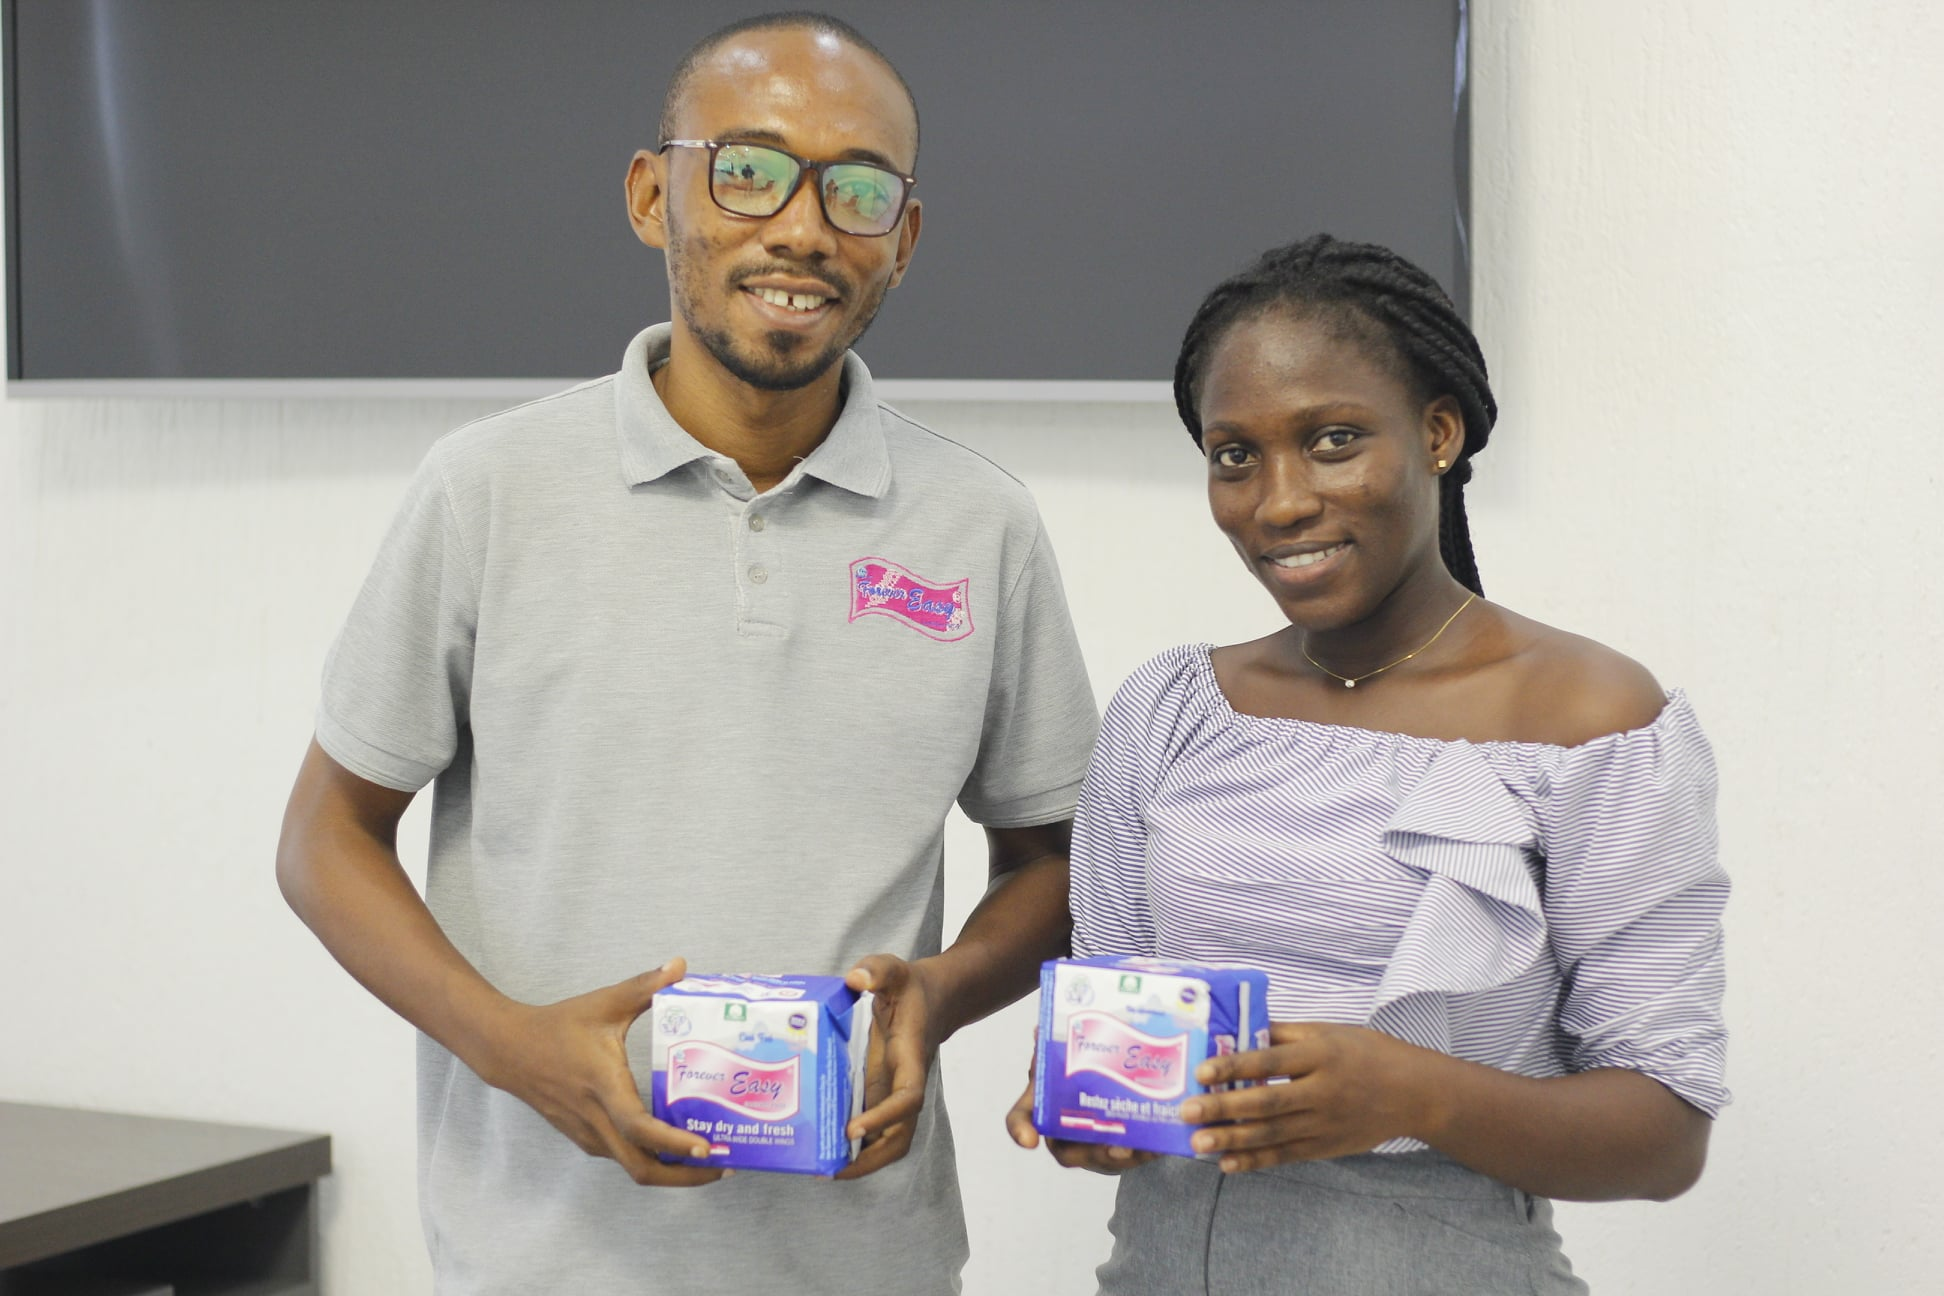 LESFAM & FOREVER EASY SANITARY PAD TO GIVEAWAY FREE SANITARY PADS ON WORLD MENSTRUAL HYGENE DAY